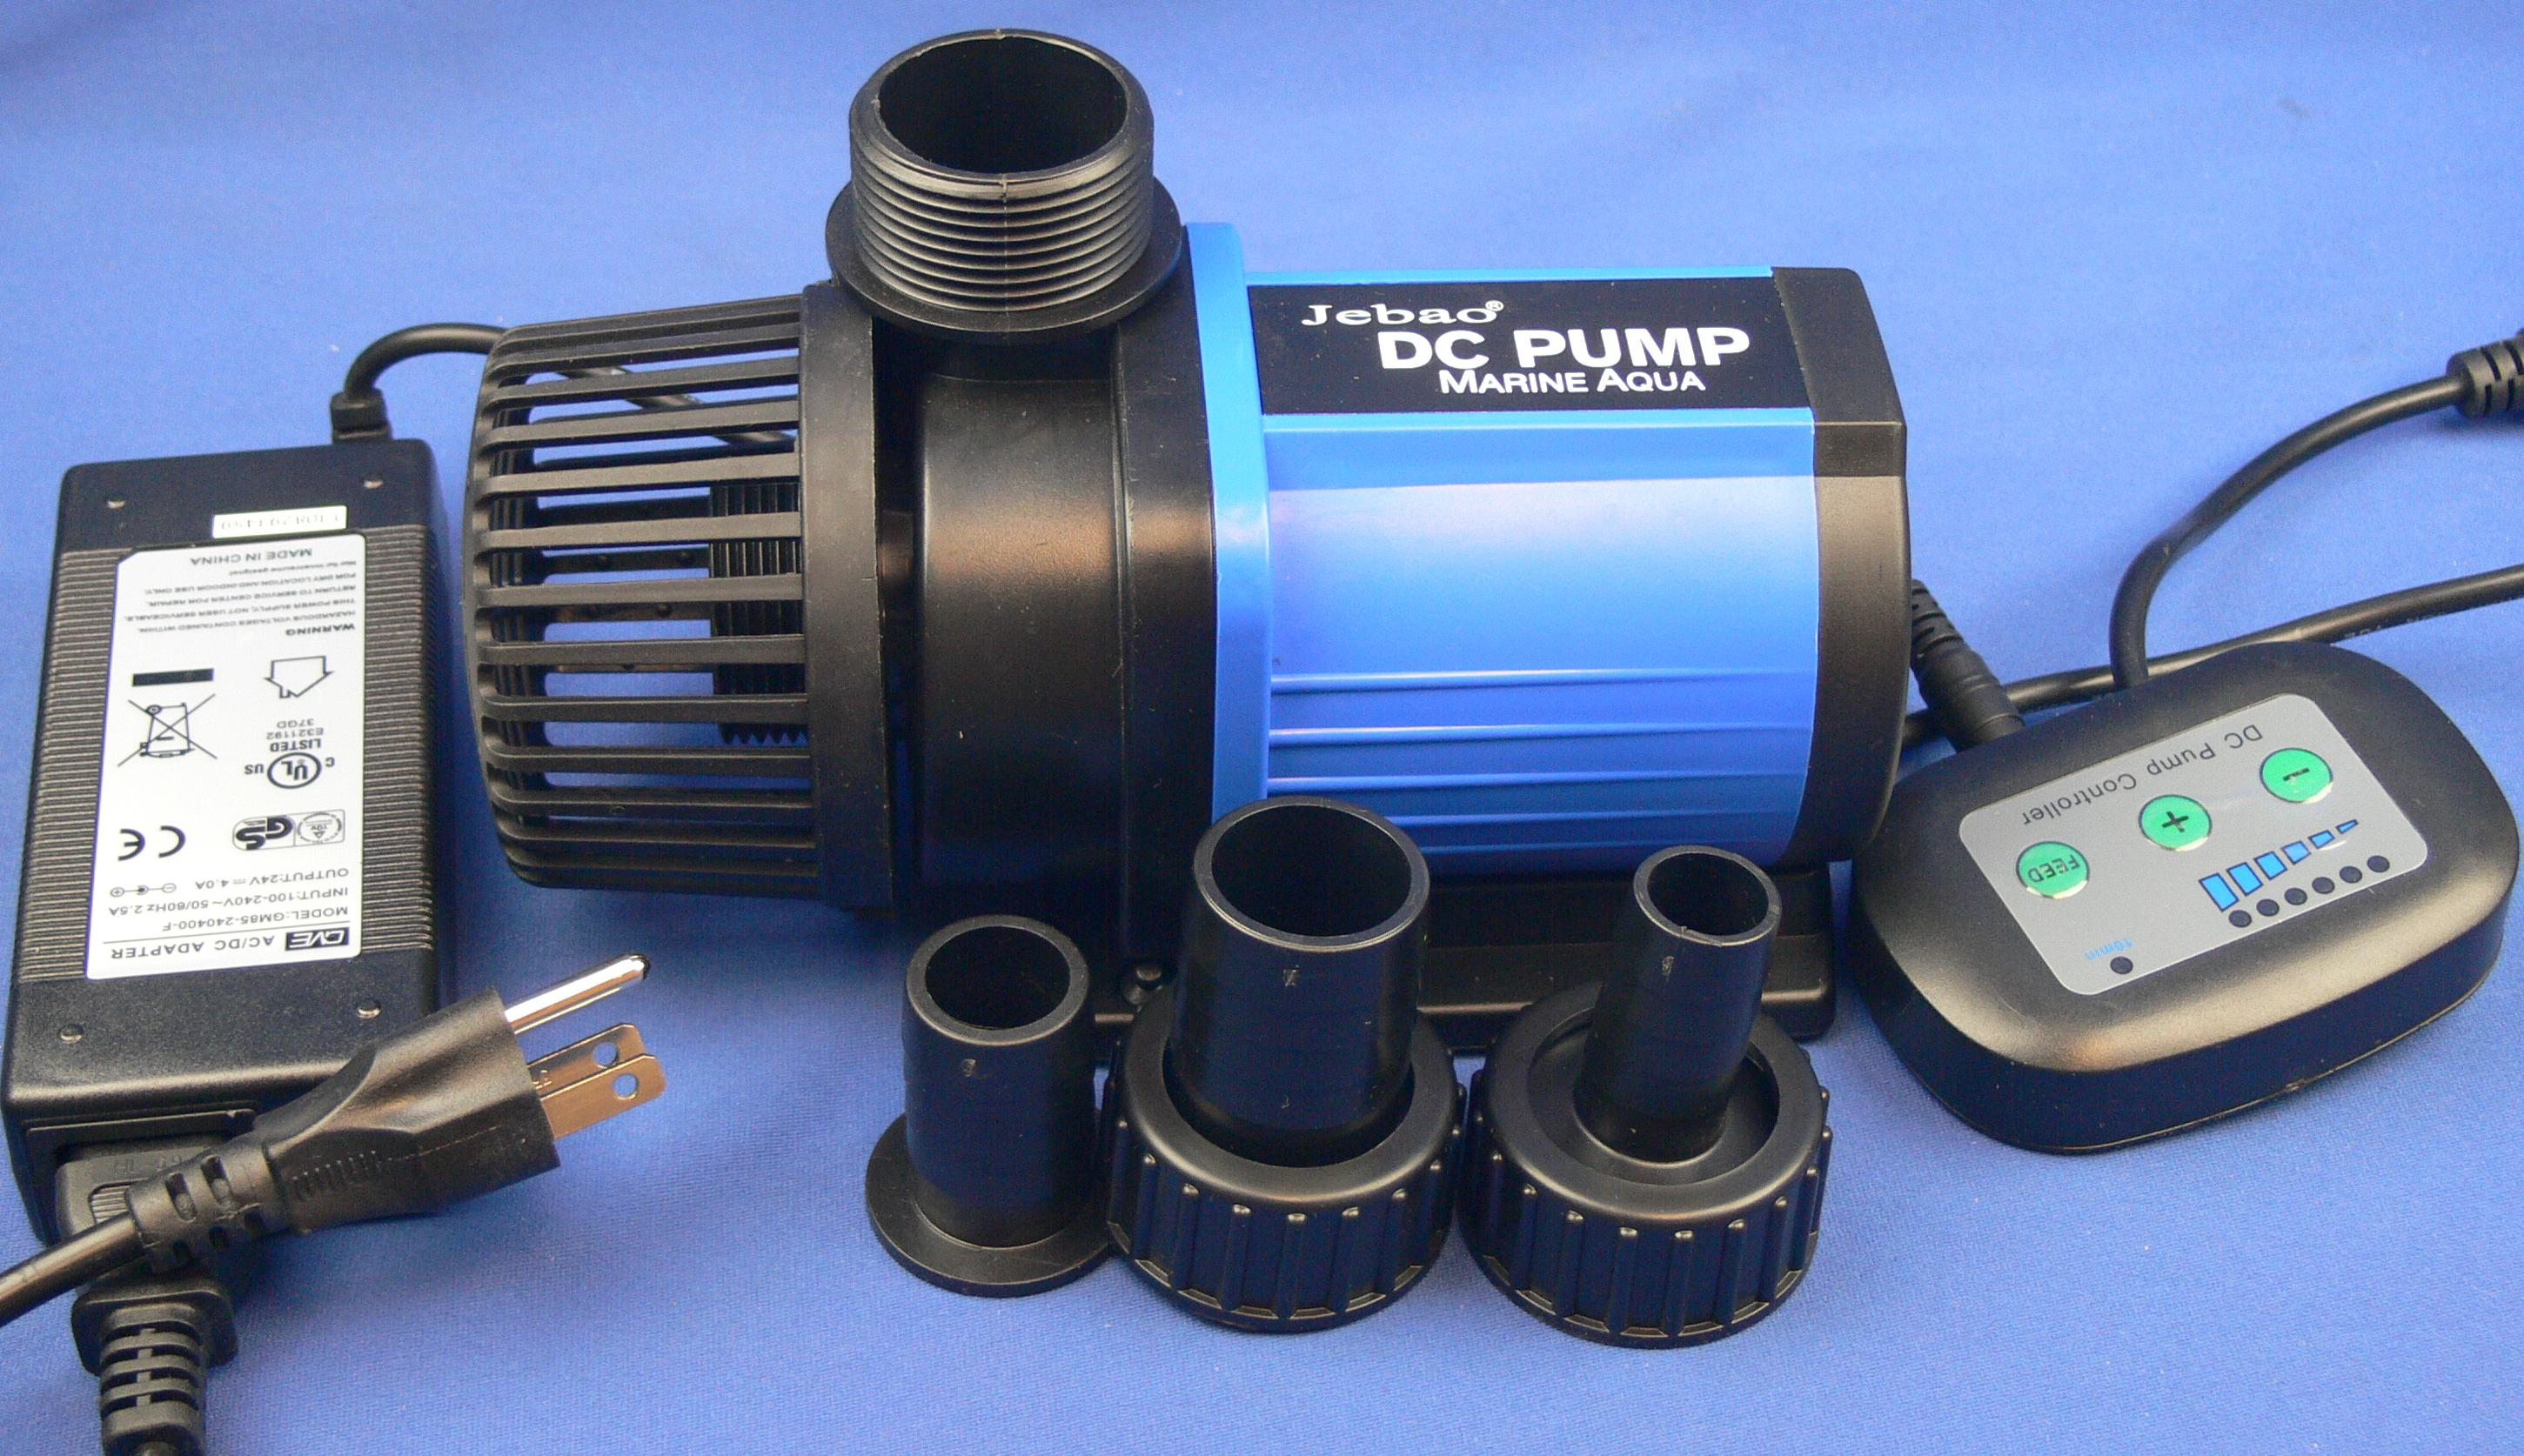 Low voltage 12 volt pond fountain pumps discount Water pumps for ponds and fountains